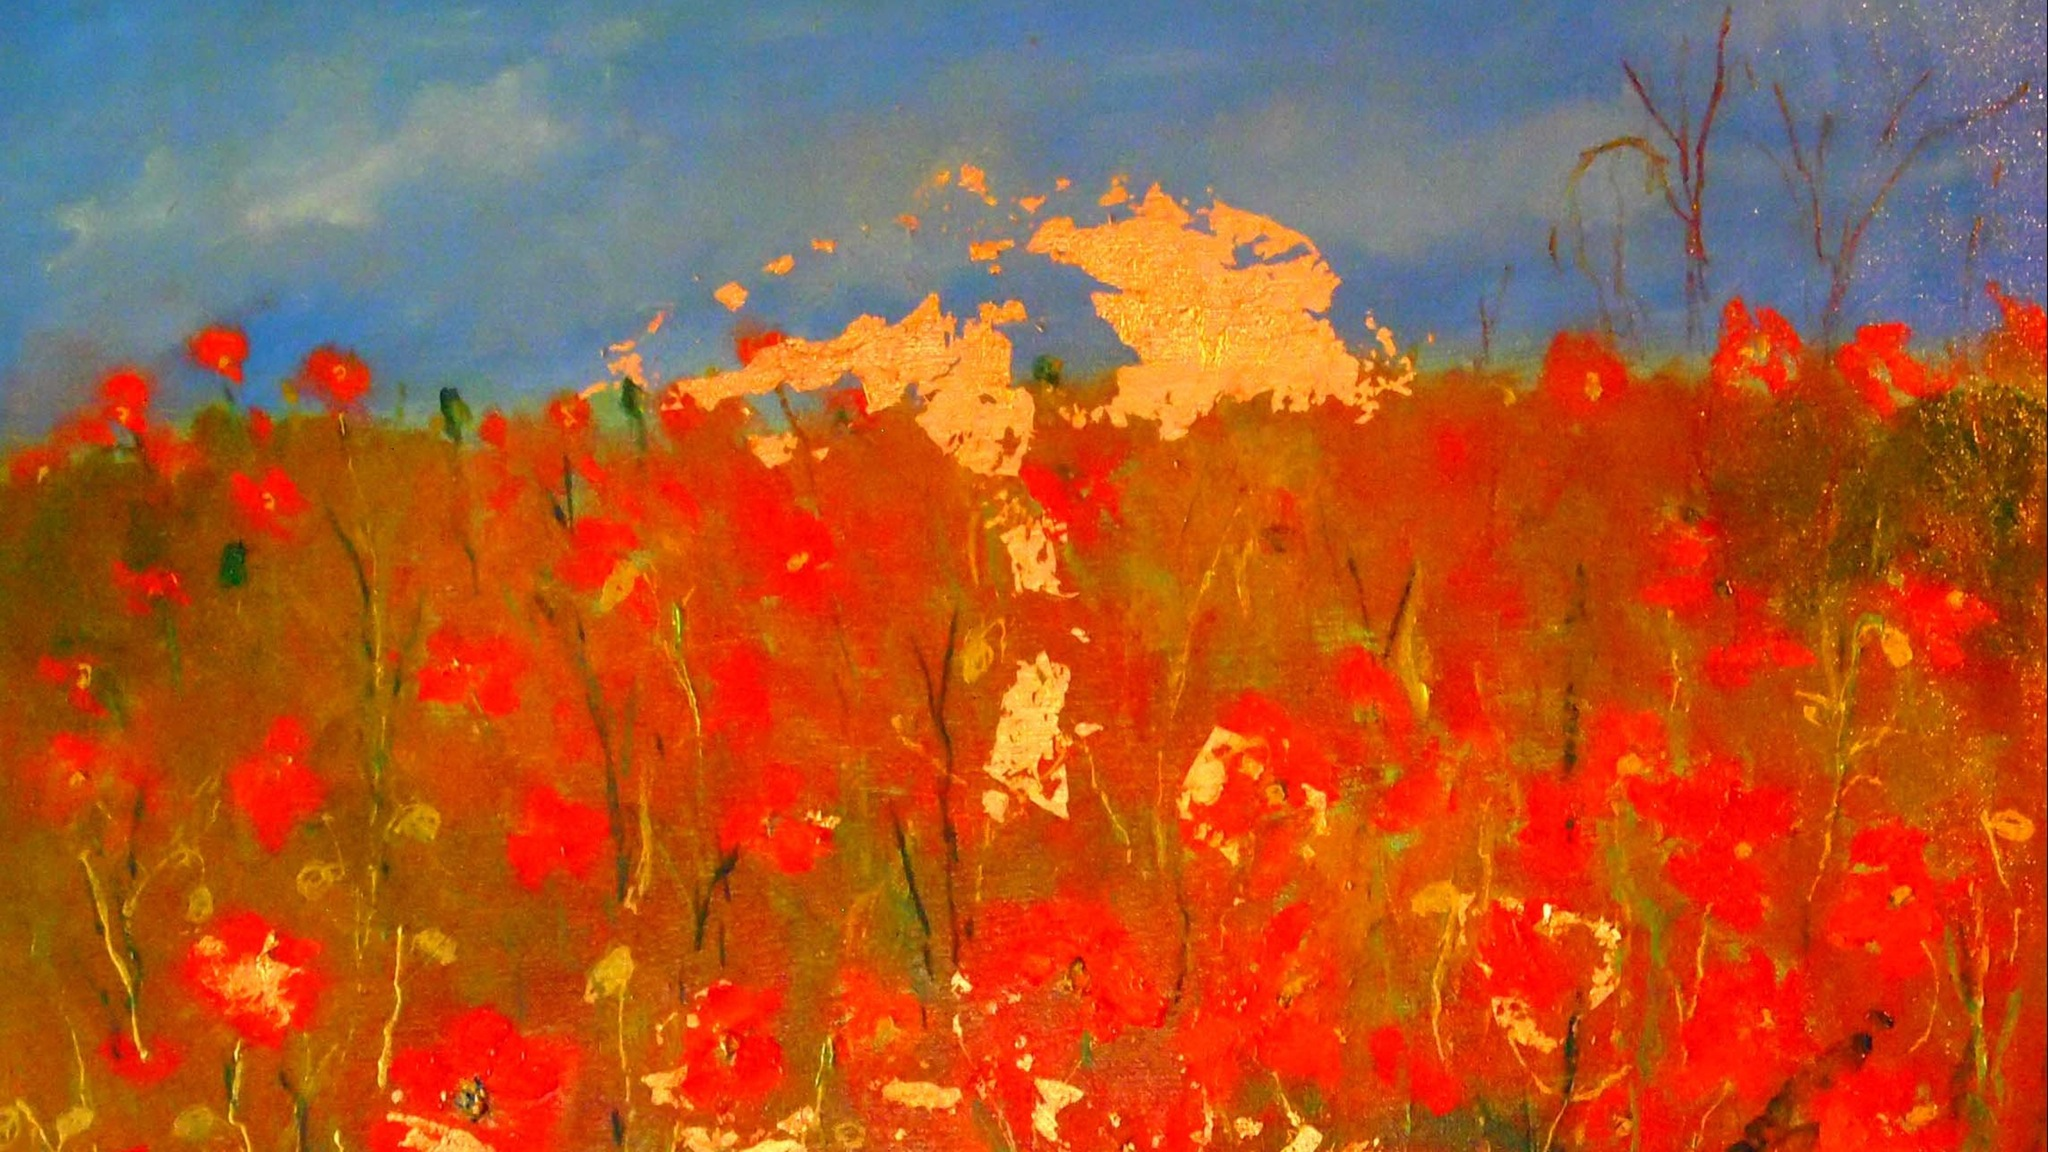 The sun sets on the Field of Poppies - oil paint, gutta and gold foil